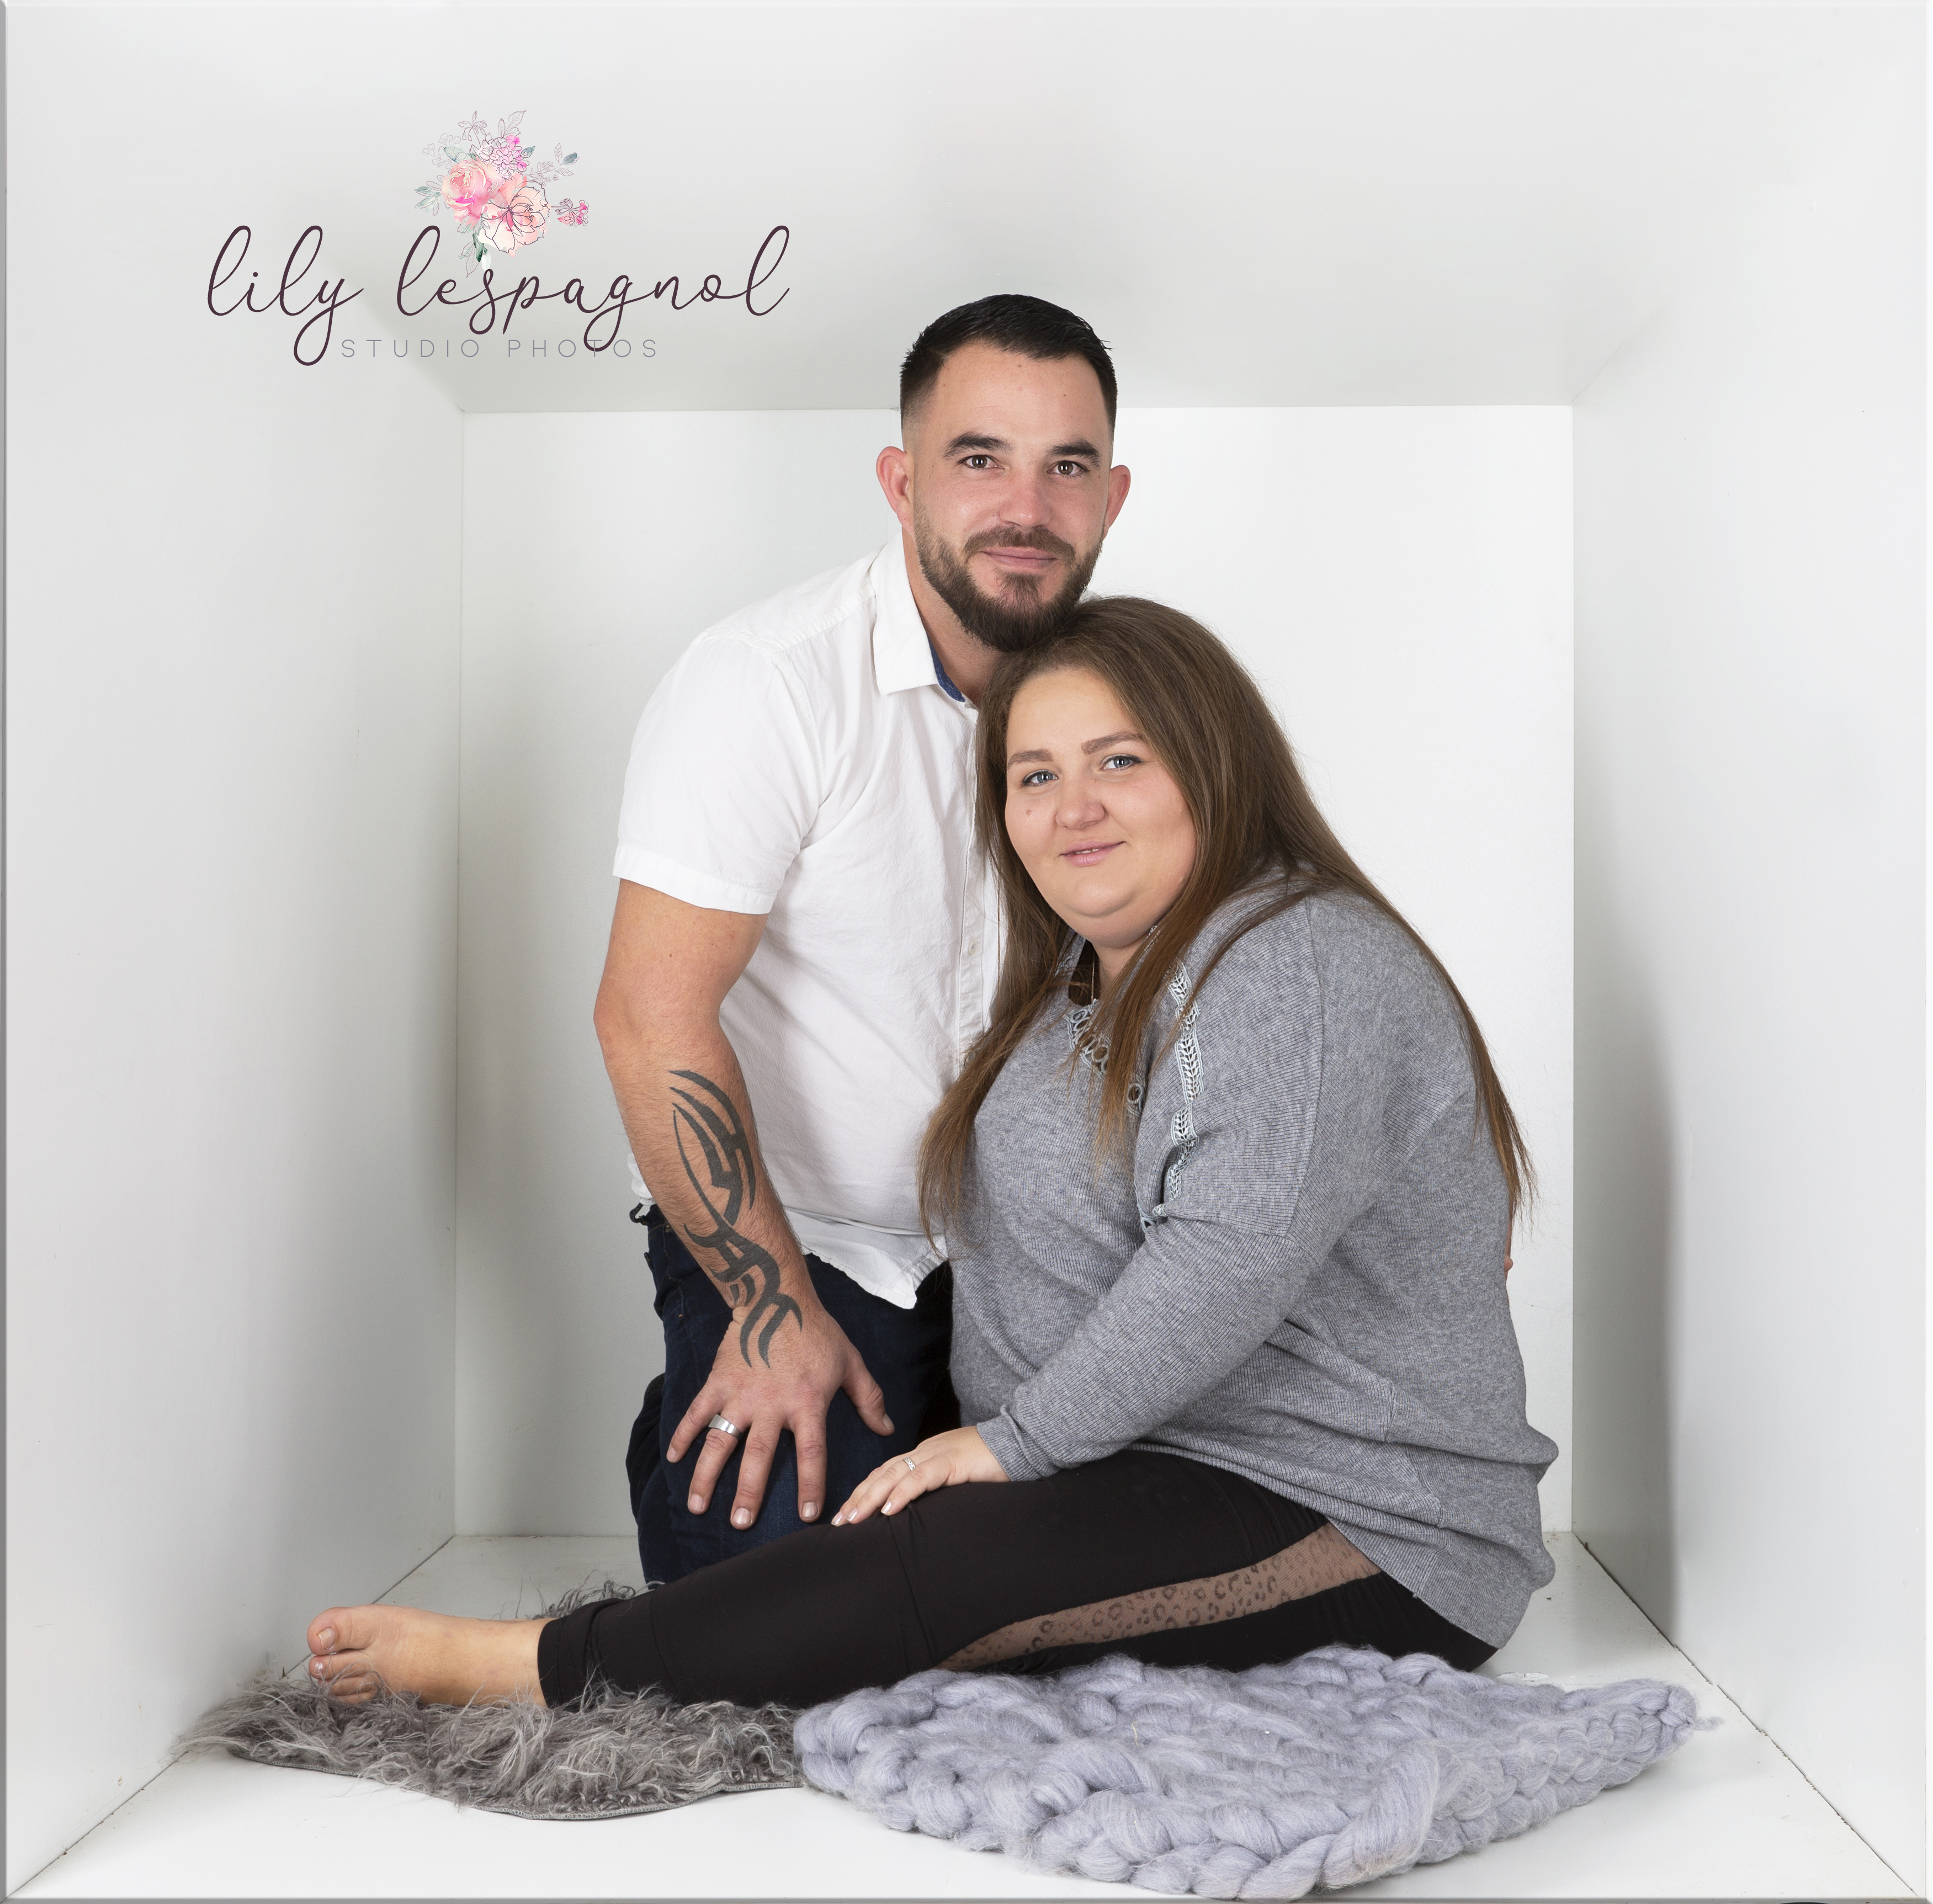 Lily Lespagnol Studio Photos